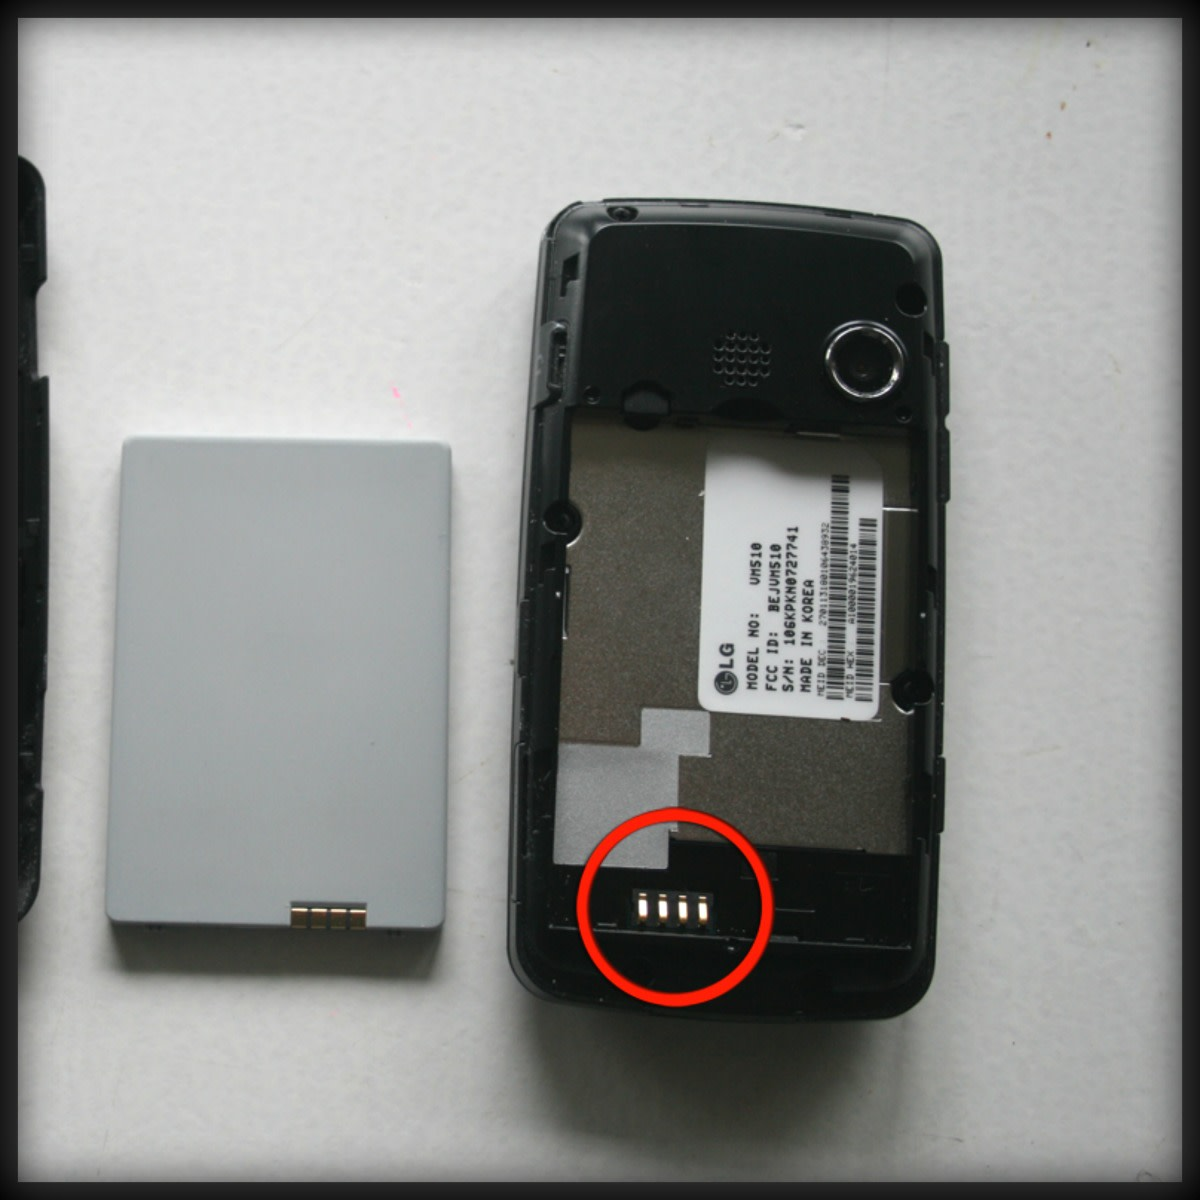 LG Rumor Touch battery terminal is located in the back of the phone. The terminals are where the battery connects to the phone to provide the power.